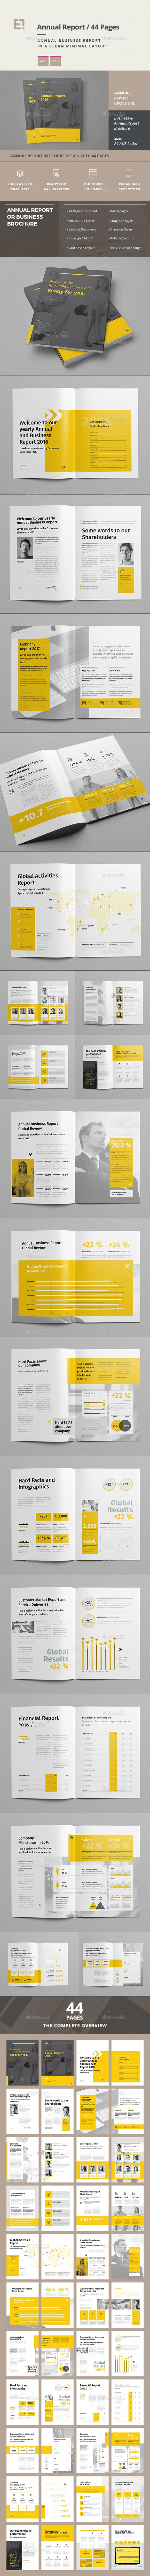 Annual Report | Diseño editorial y Editorial